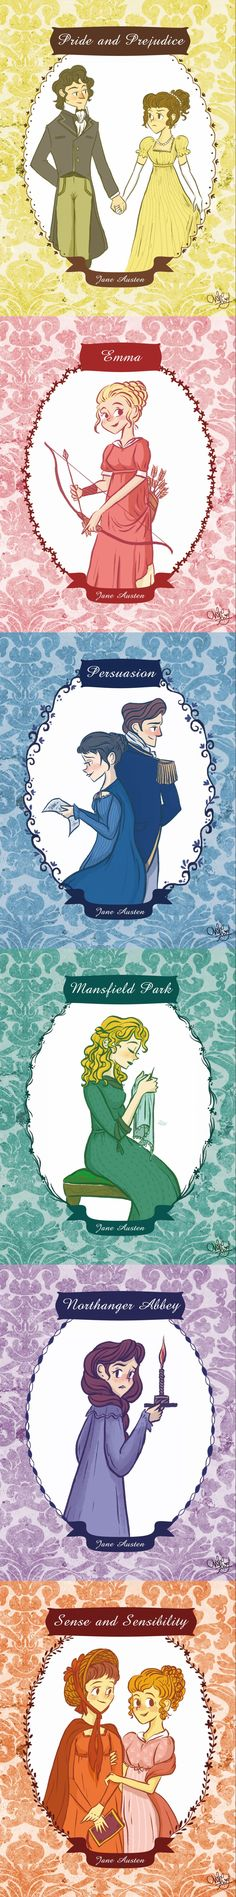 Illustrations for Jane Austen's classical novels.  By ChihAriel